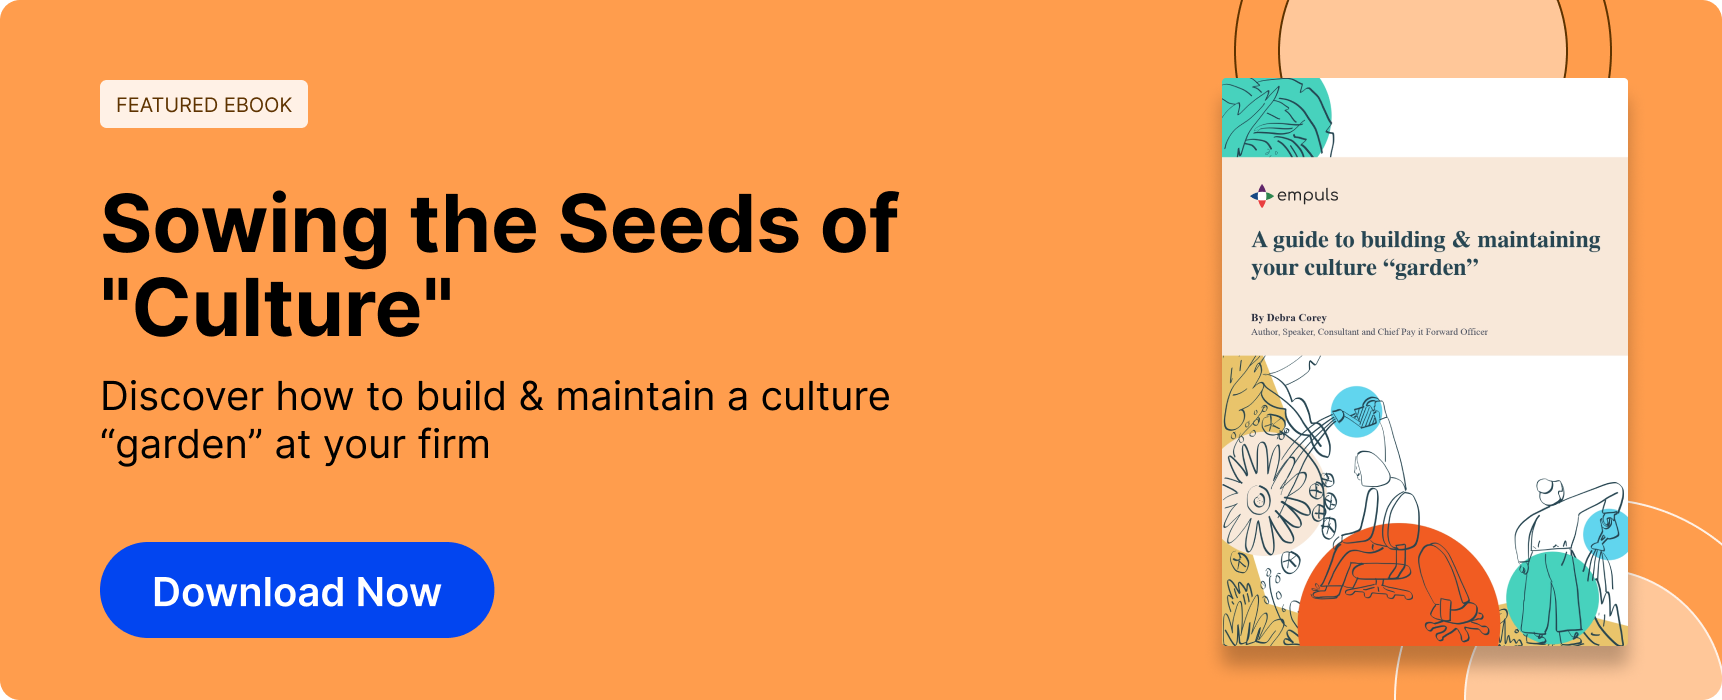 """A Guide to Building & Maintaining your Culture """"Garden"""""""